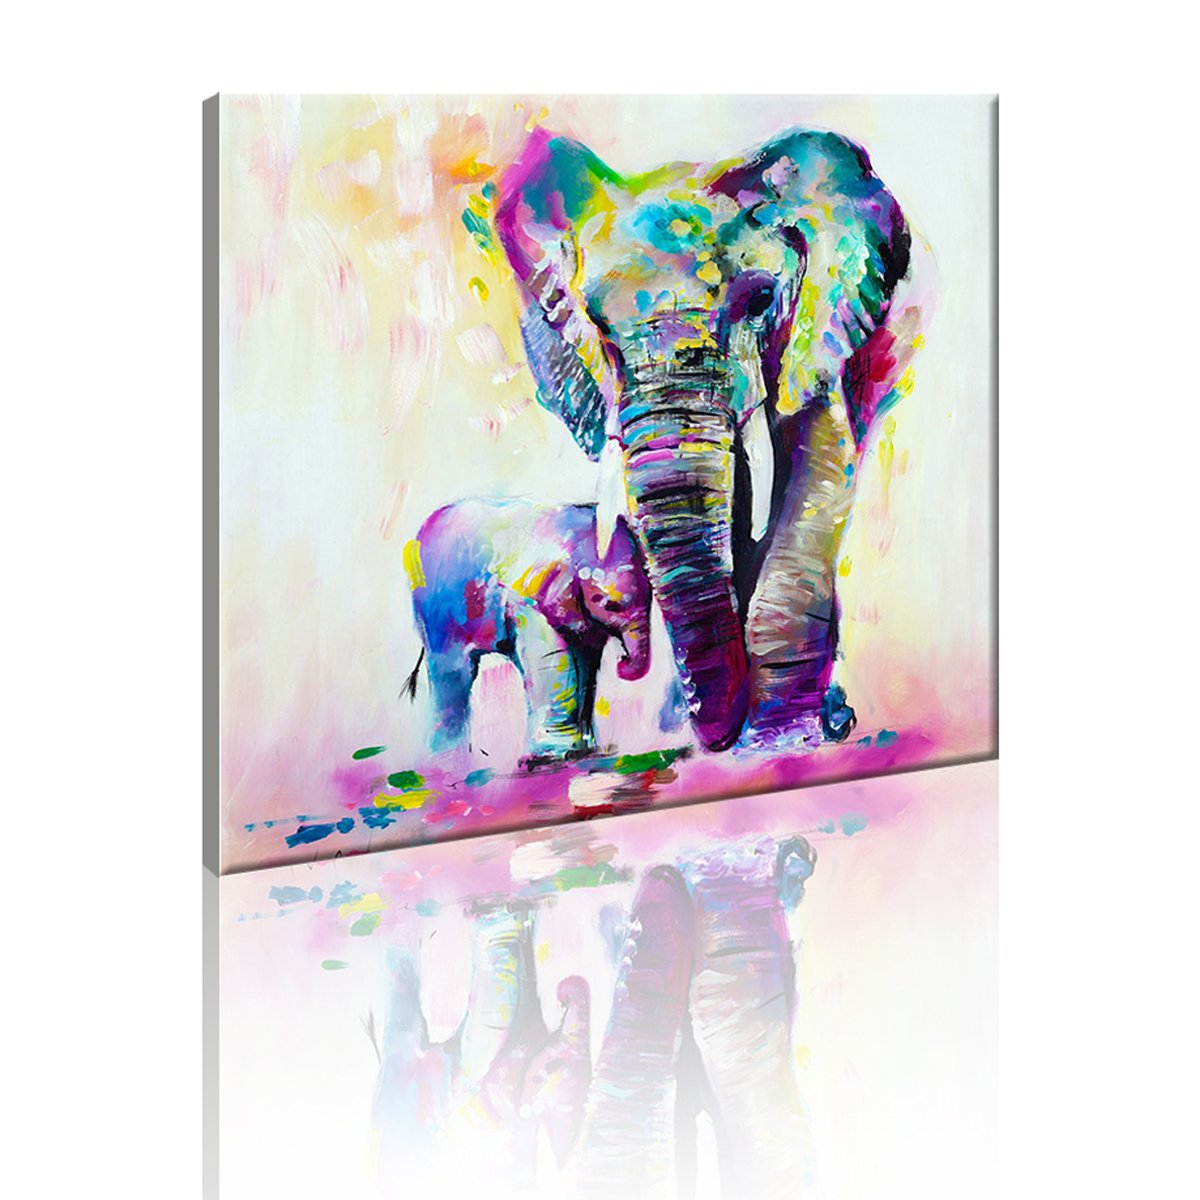 Fly spray 1 panel framed 100 hand painted oil paintings canvas wall art colorful elephants mom child animal modern abstract artwork painting for living